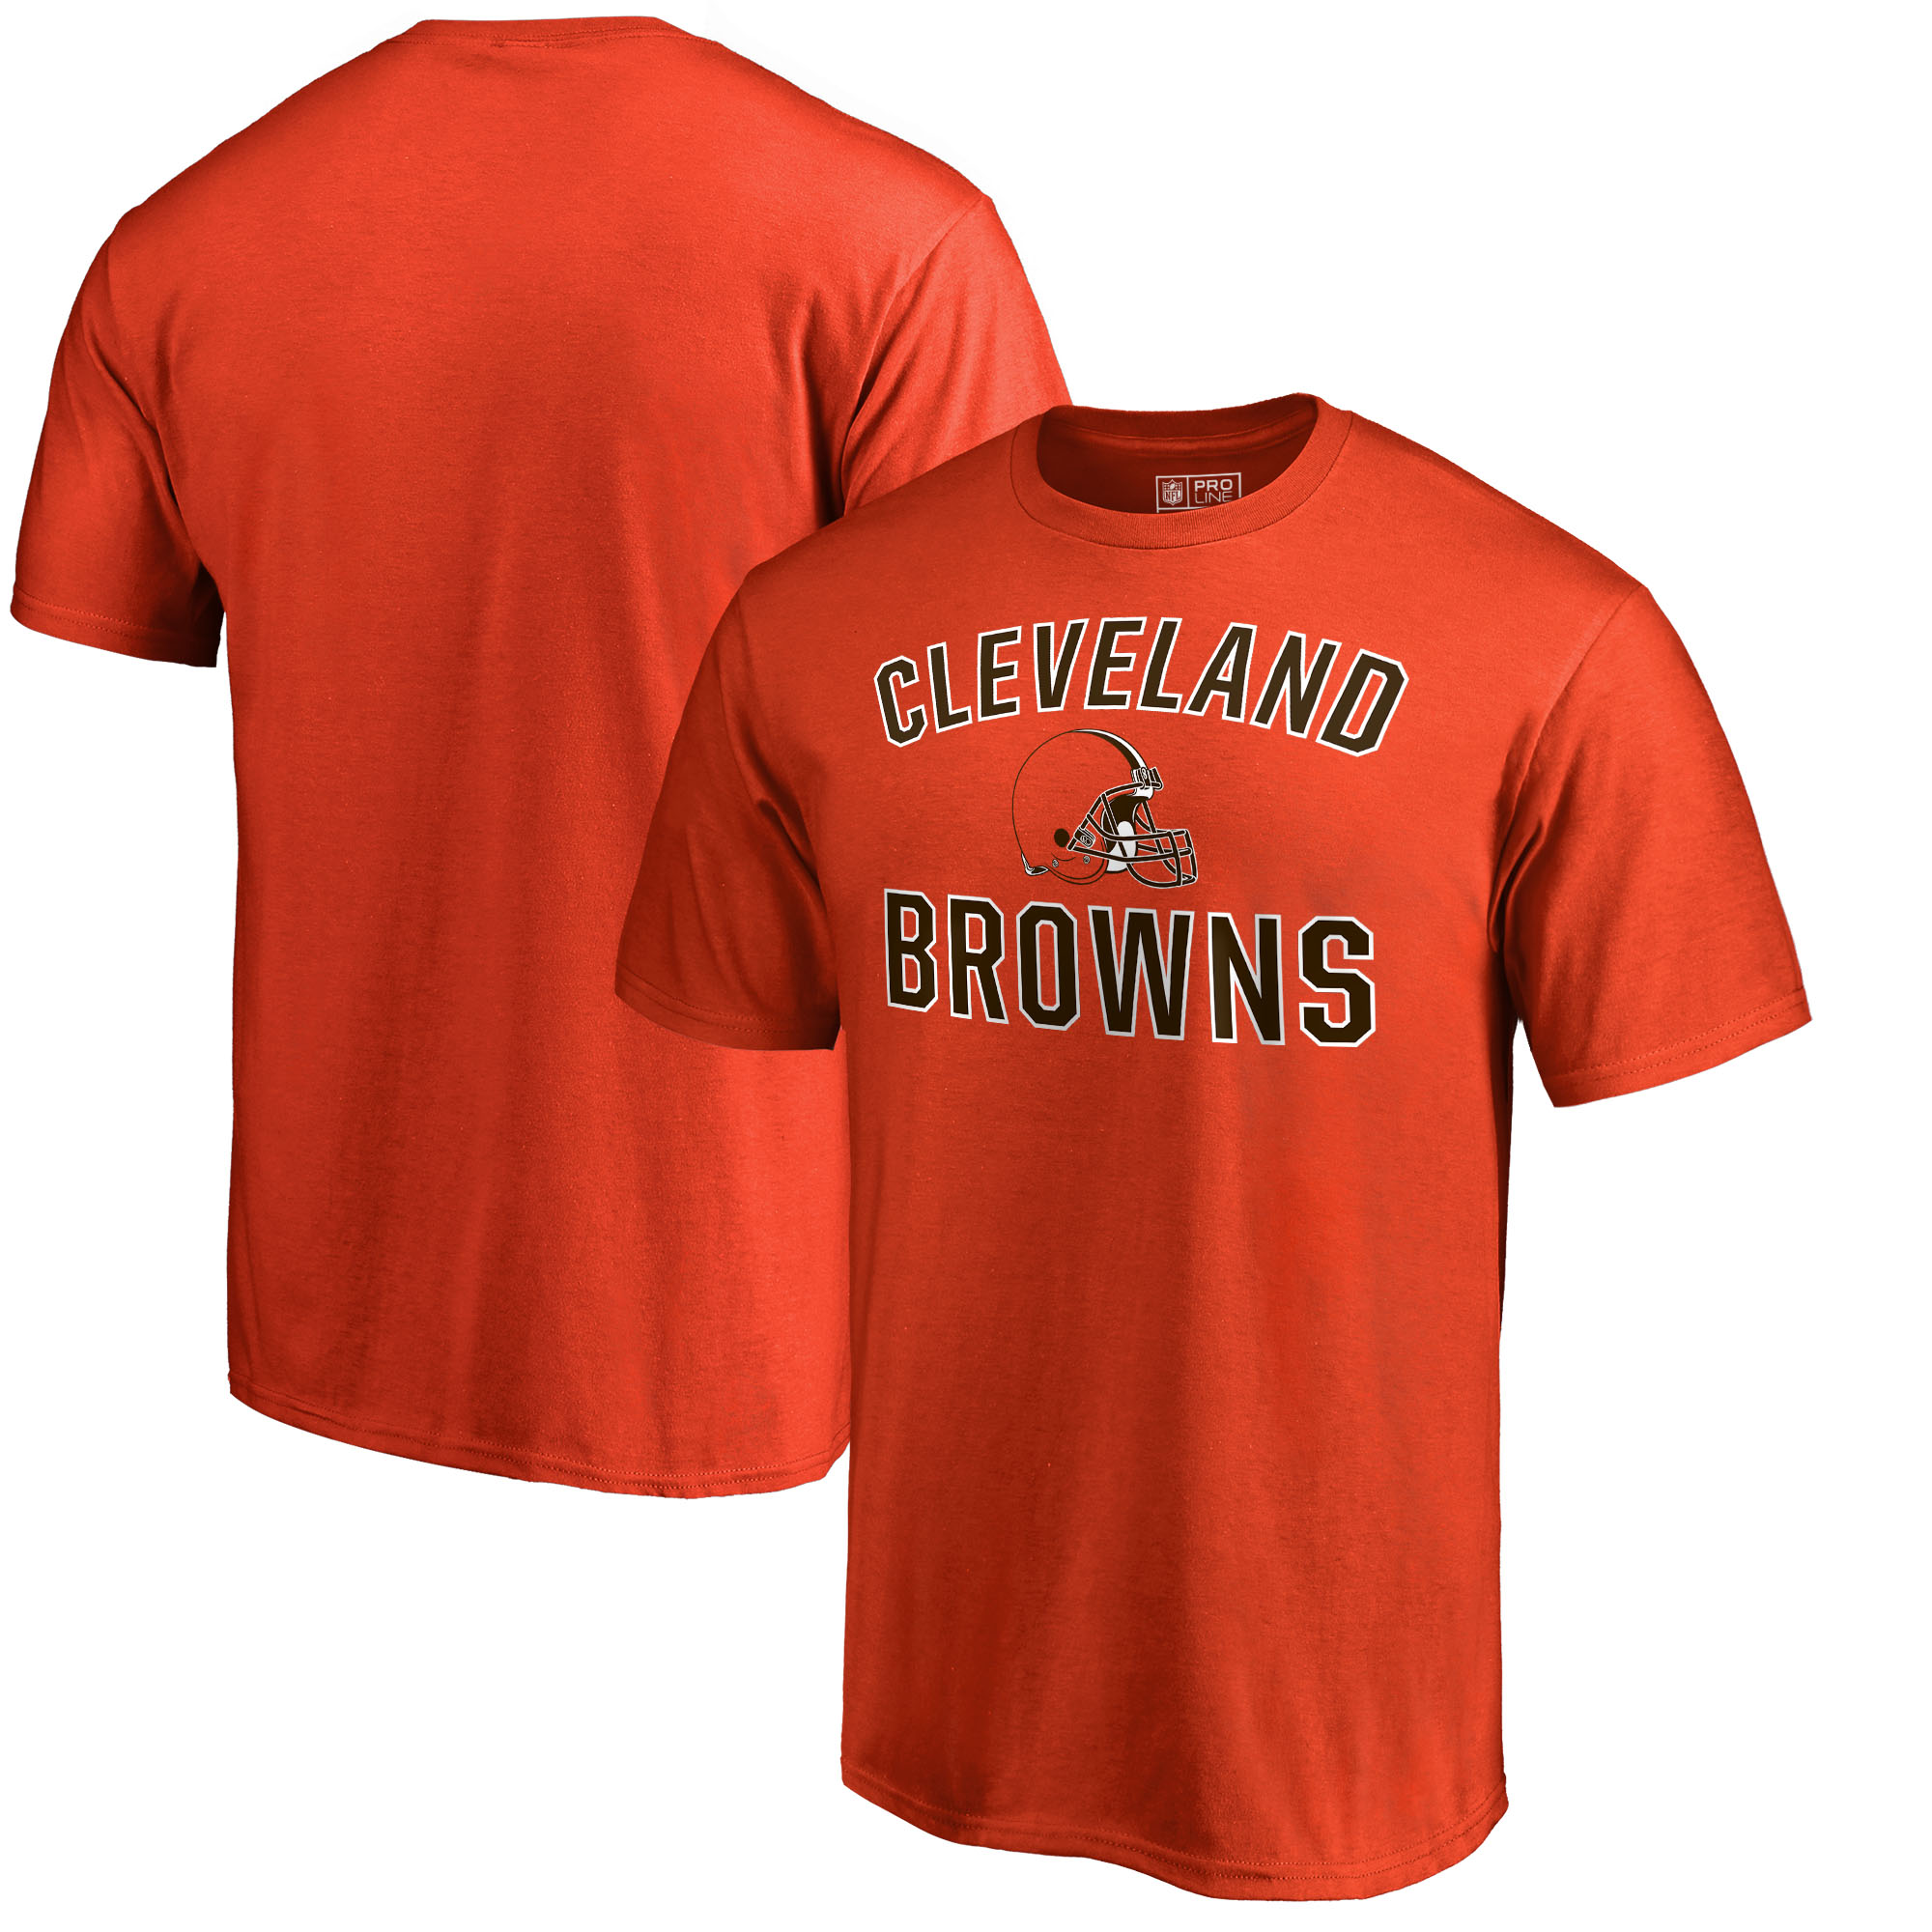 Cleveland Browns NFL Pro Line by Fanatics Branded Victory Arch T-Shirt - Orange